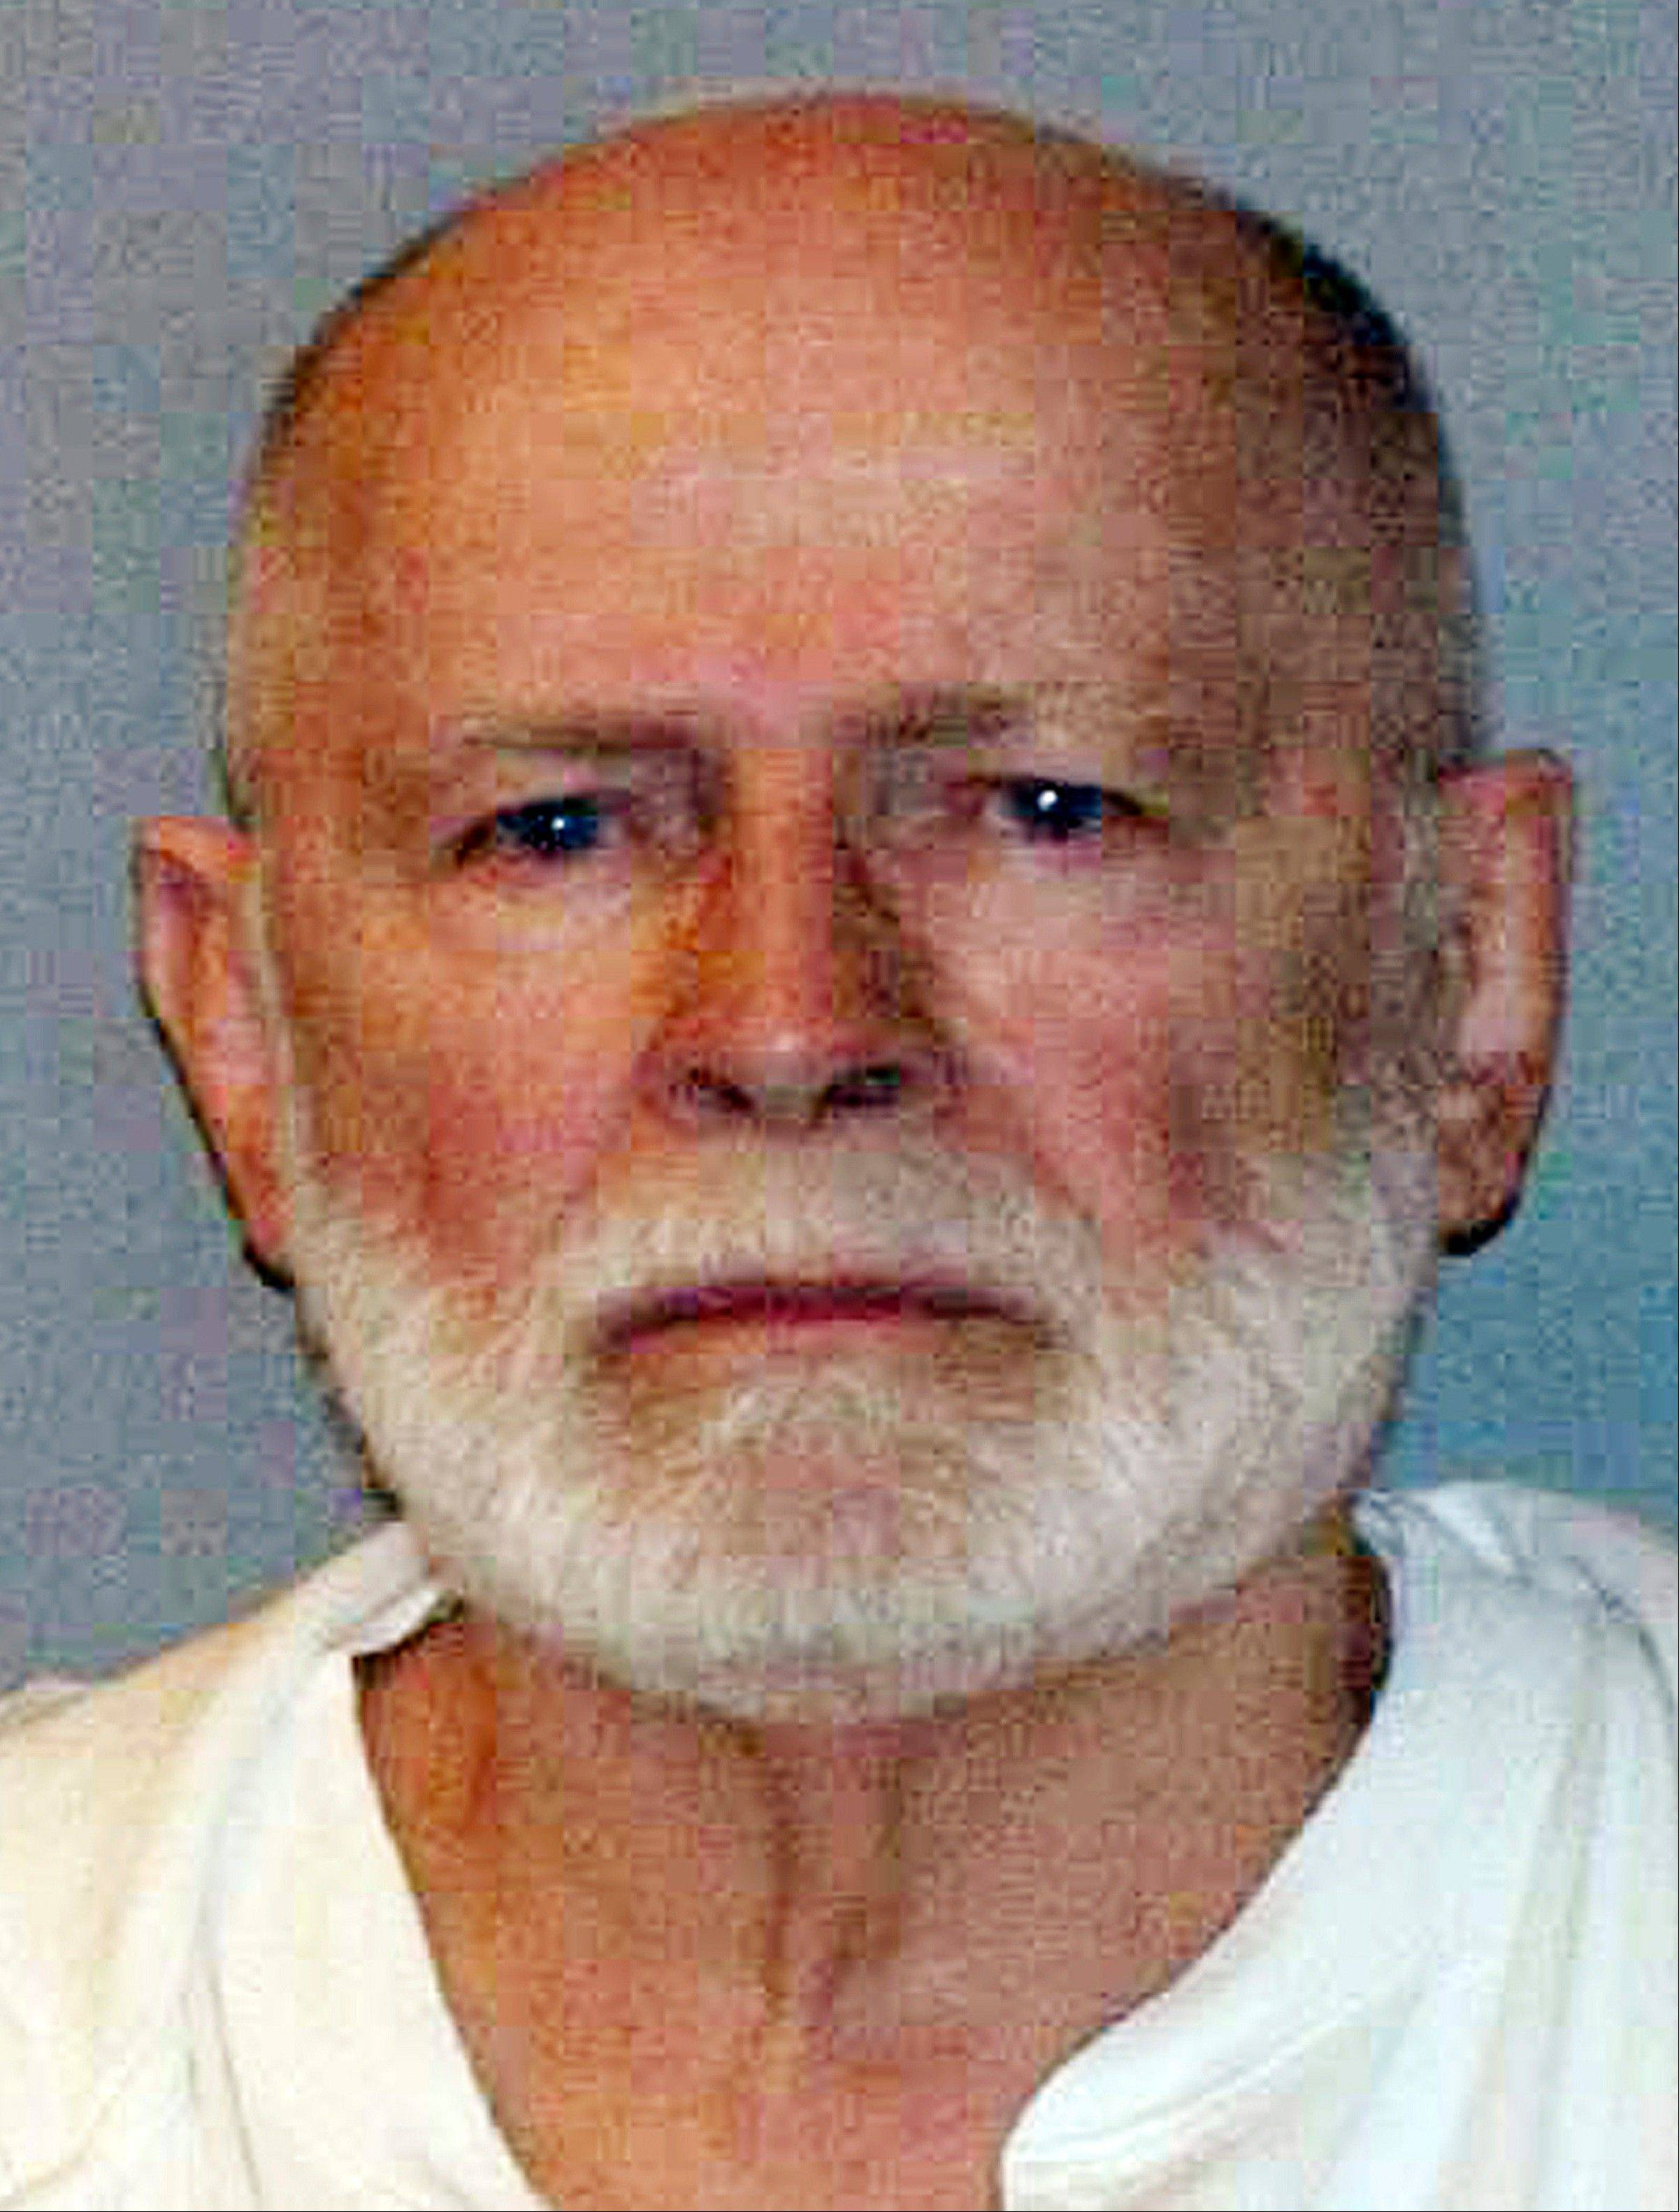 "James ""Whitey"" Bulger, one of the FBI's Ten Most Wanted fugitives, was captured in Santa Monica, Calif., after 16 years on the run. Opening arguments in Bulger's trial begin Wednesday, June 12, 2013 in federal court in Boston."